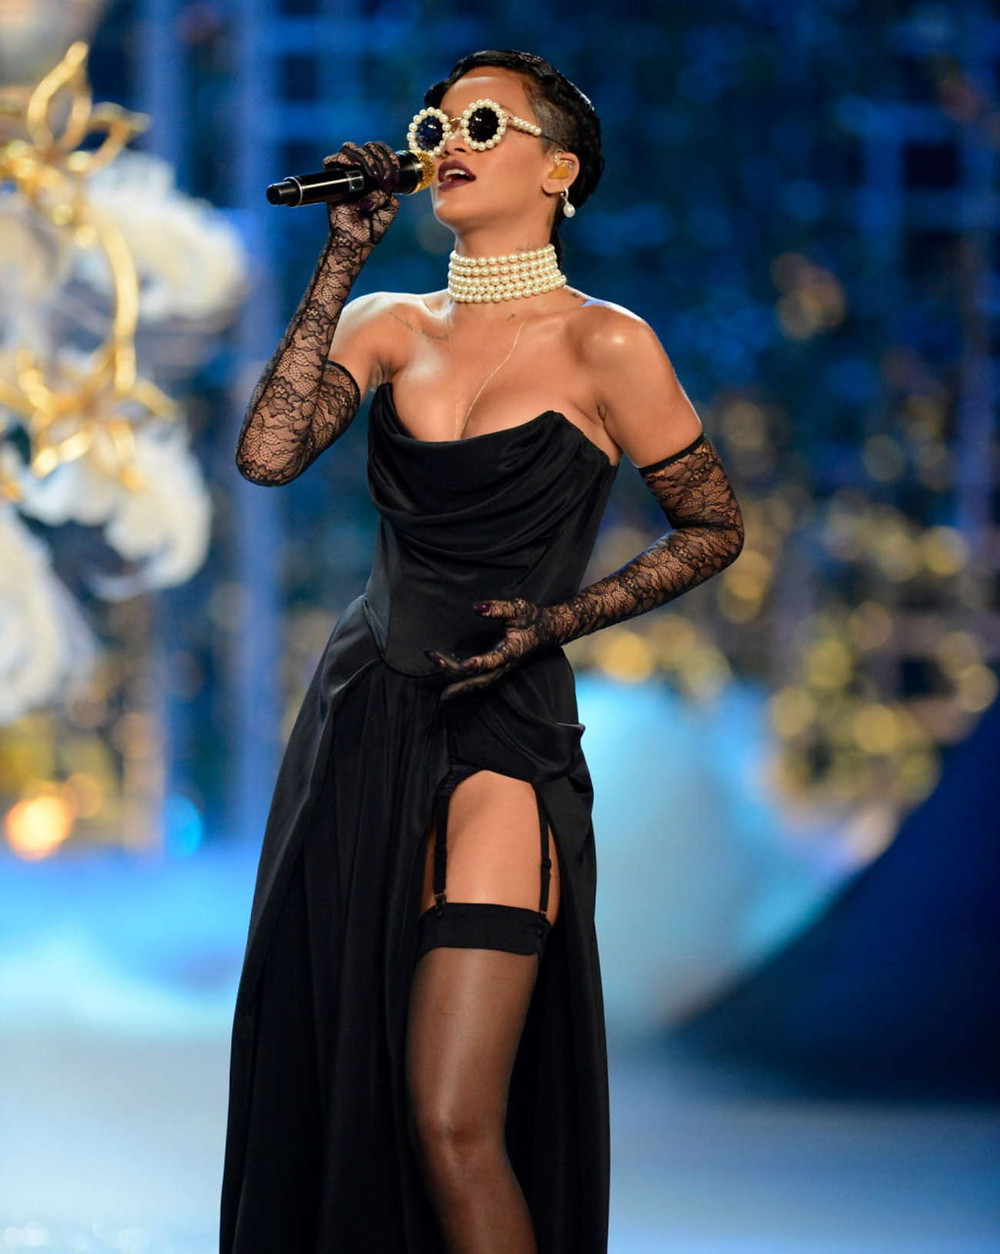 Rihanna at the 2012 Victoria's Secret fashion show runway